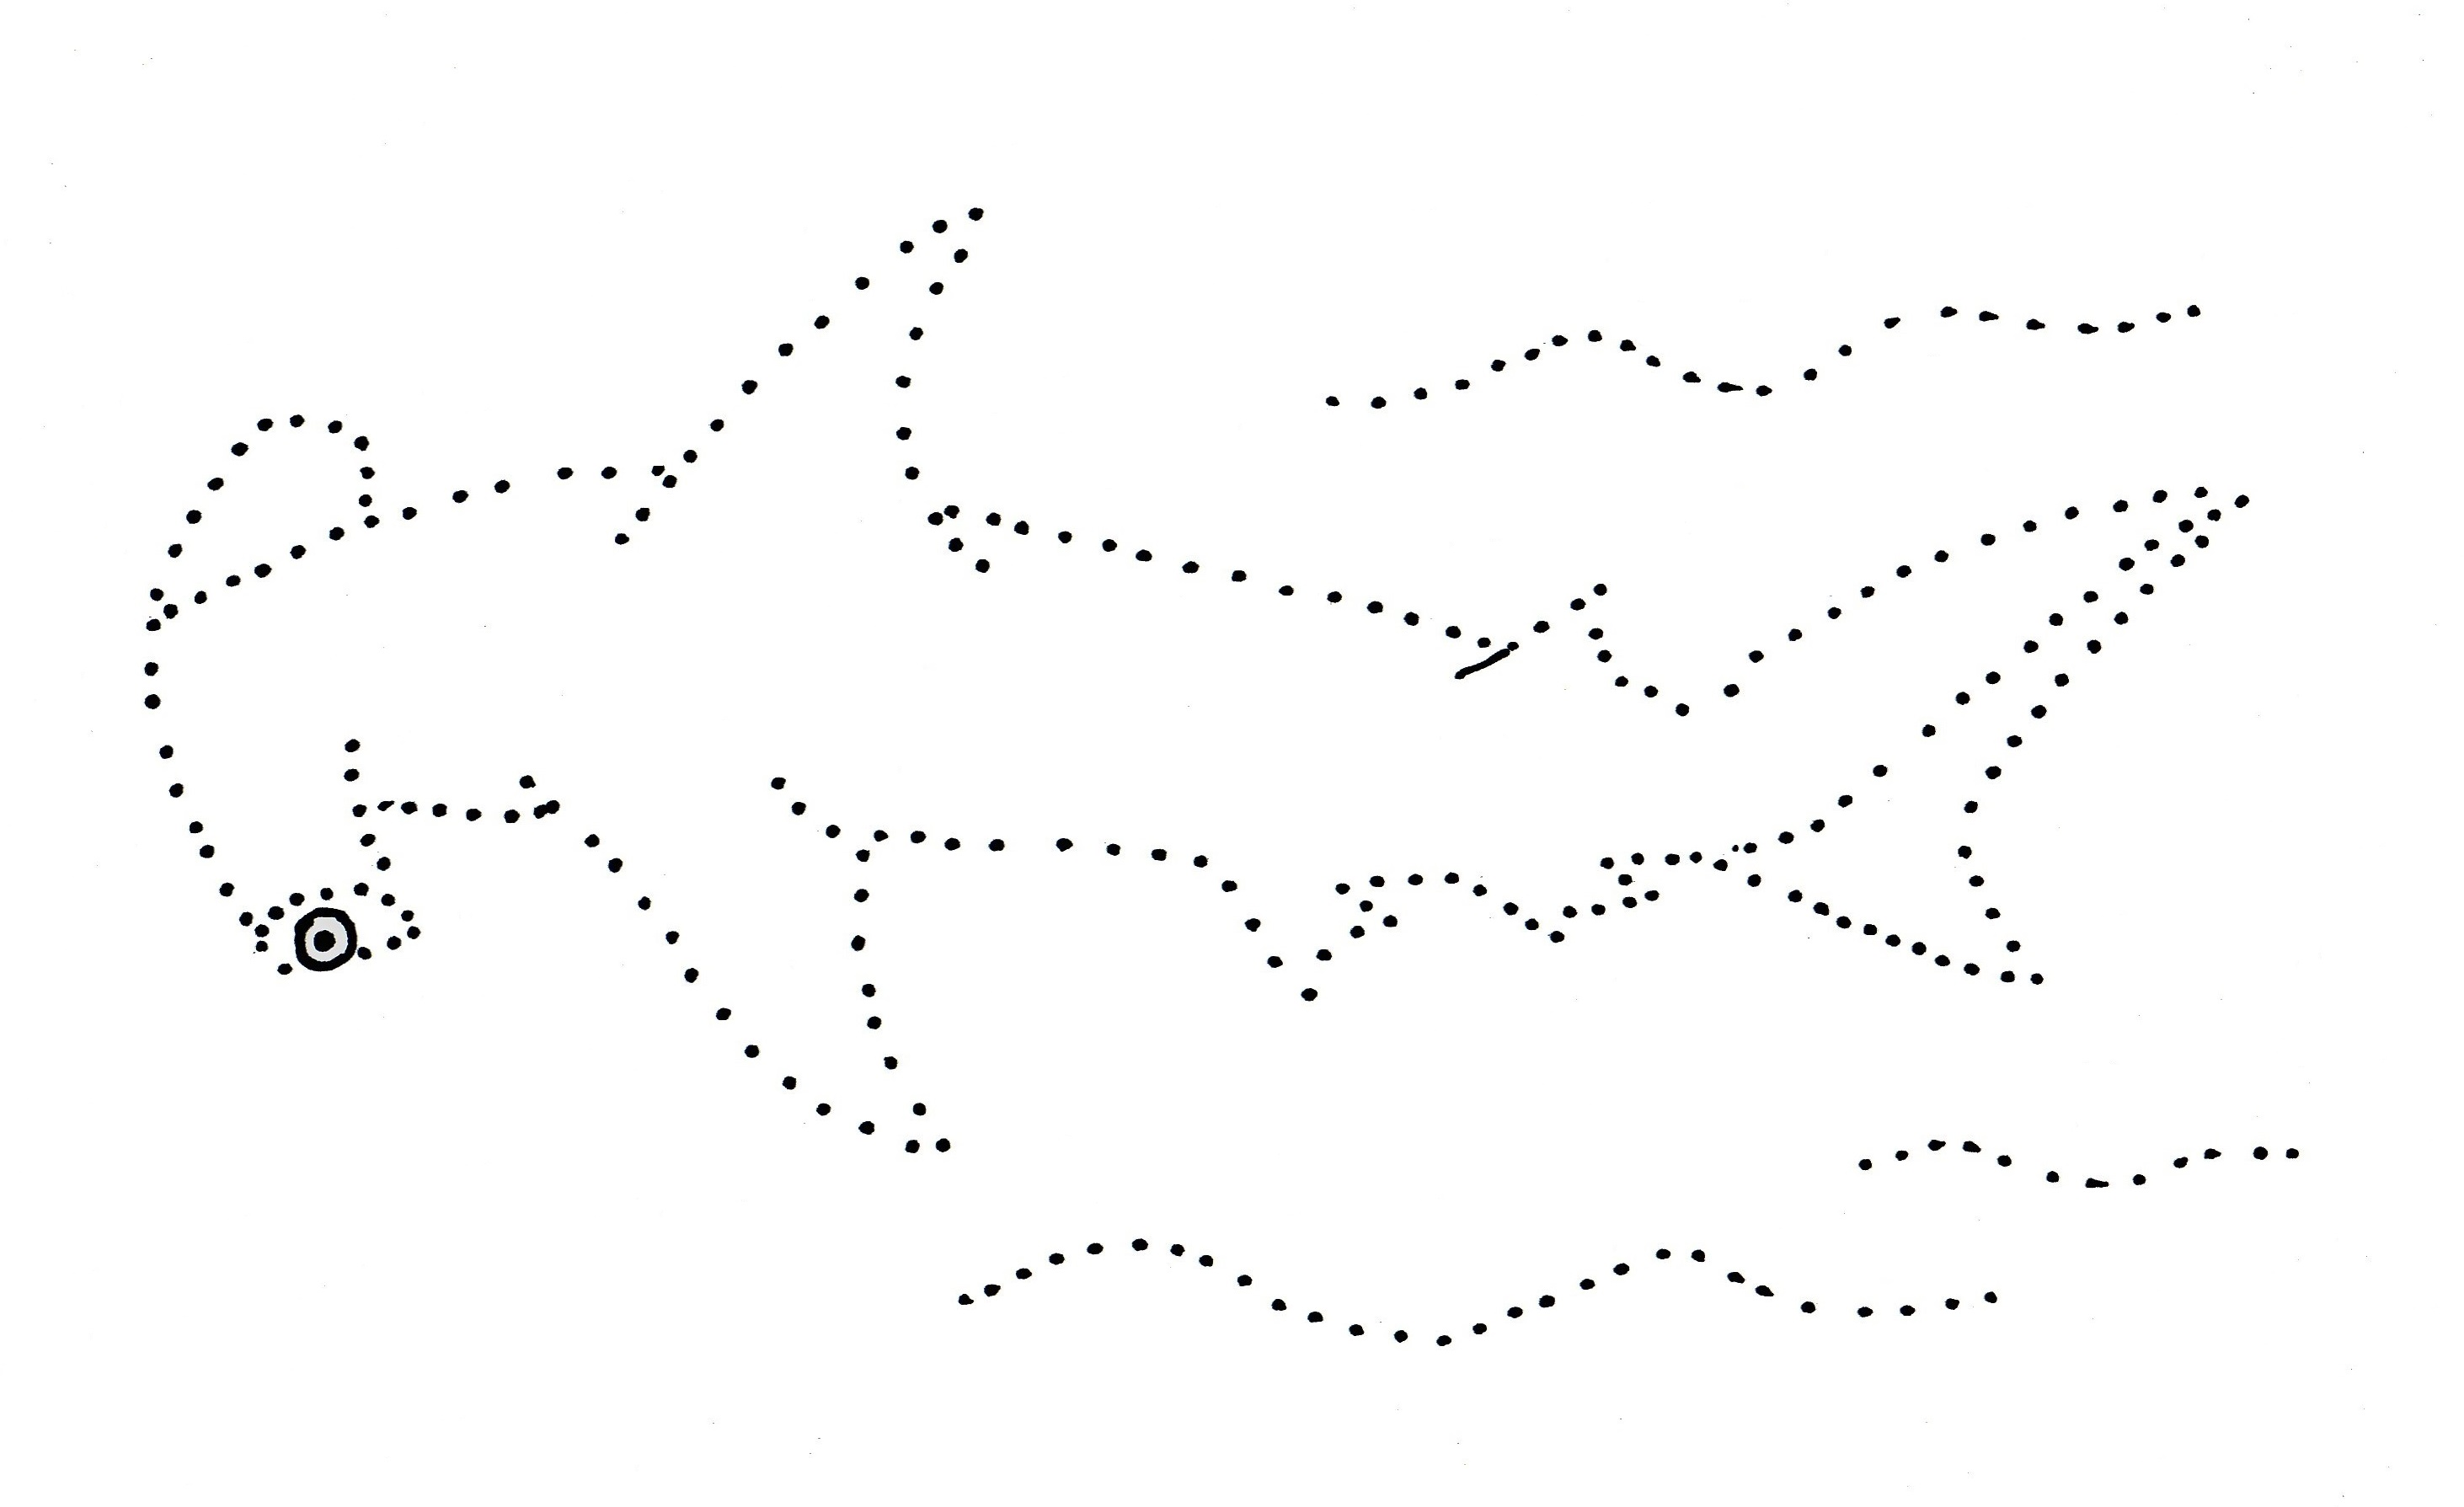 Connect The Dot Drawing at GetDrawings.com | Free for personal use ...